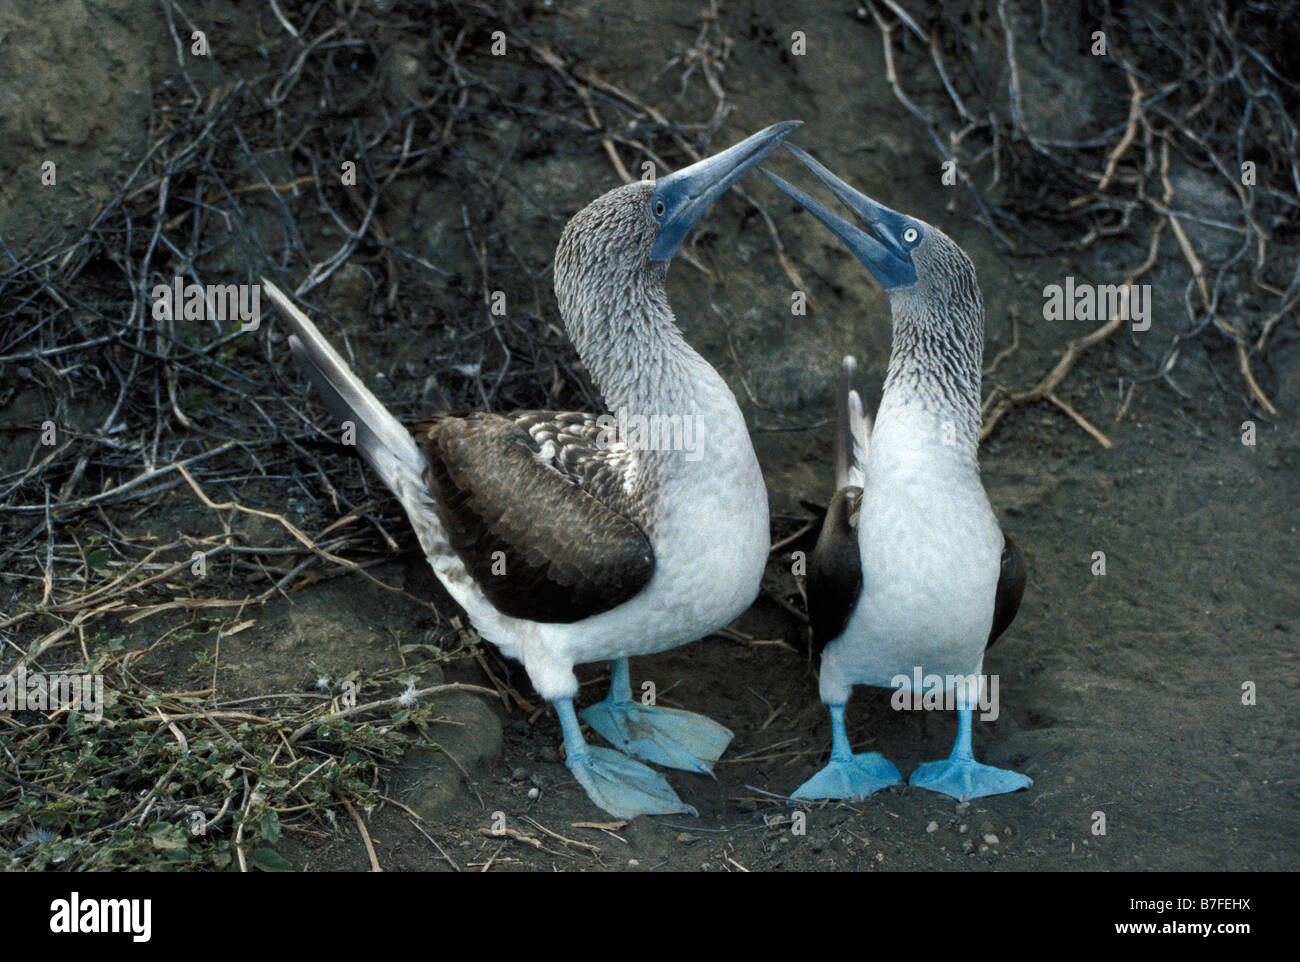 fou a pieds bleu Blue footed Boody in courtship behaviour Galapagos Adult Adults Alone Archipiélago de Colón - Stock Image